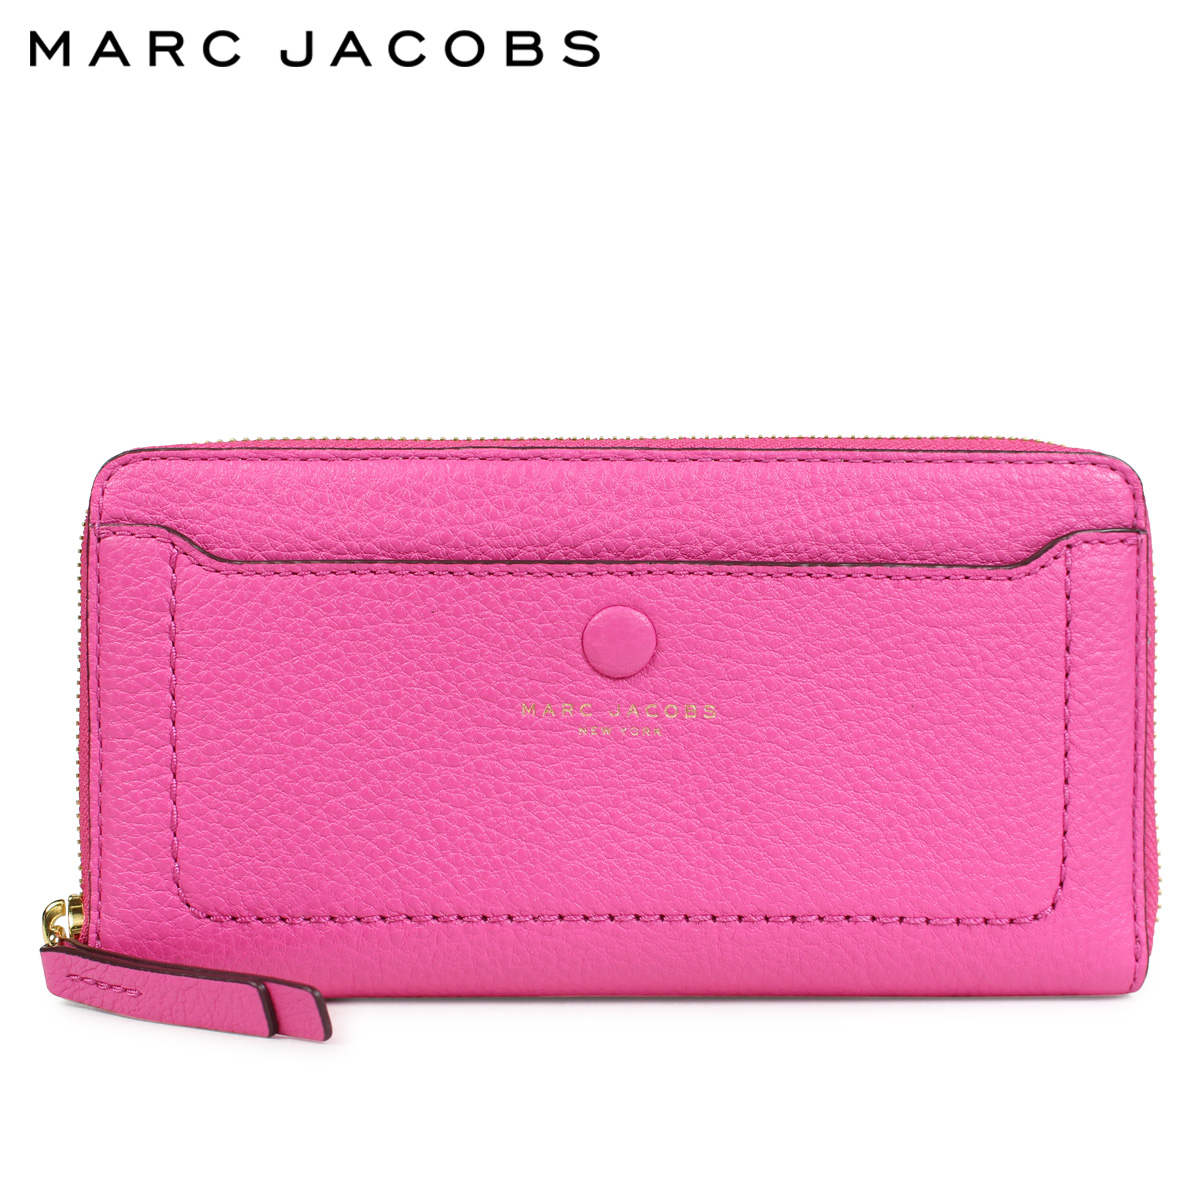 MARC JACOBS LEATHER VERTICAL ZIP-AROUND WALLET マークジェイコブス 財布 長財布 レディース ラウンドファスナー レザー ピンク M0013948